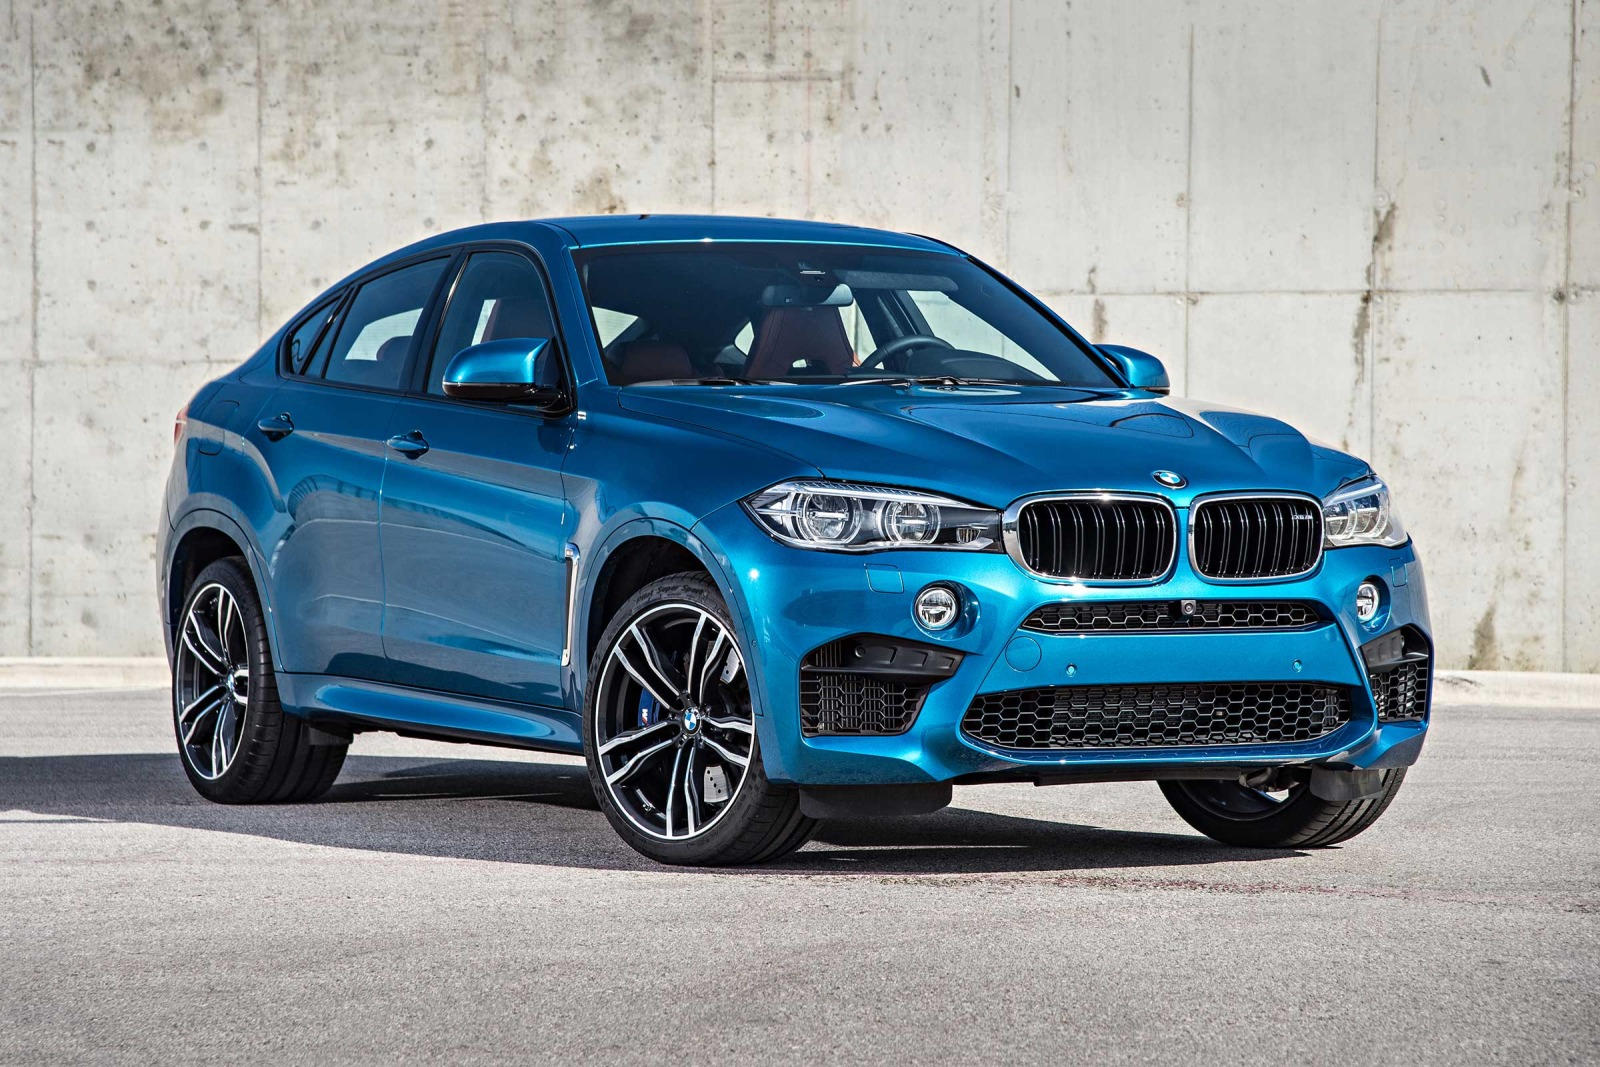 2018 Bmw X6 M Review Trims Specs And Price Carbuzz